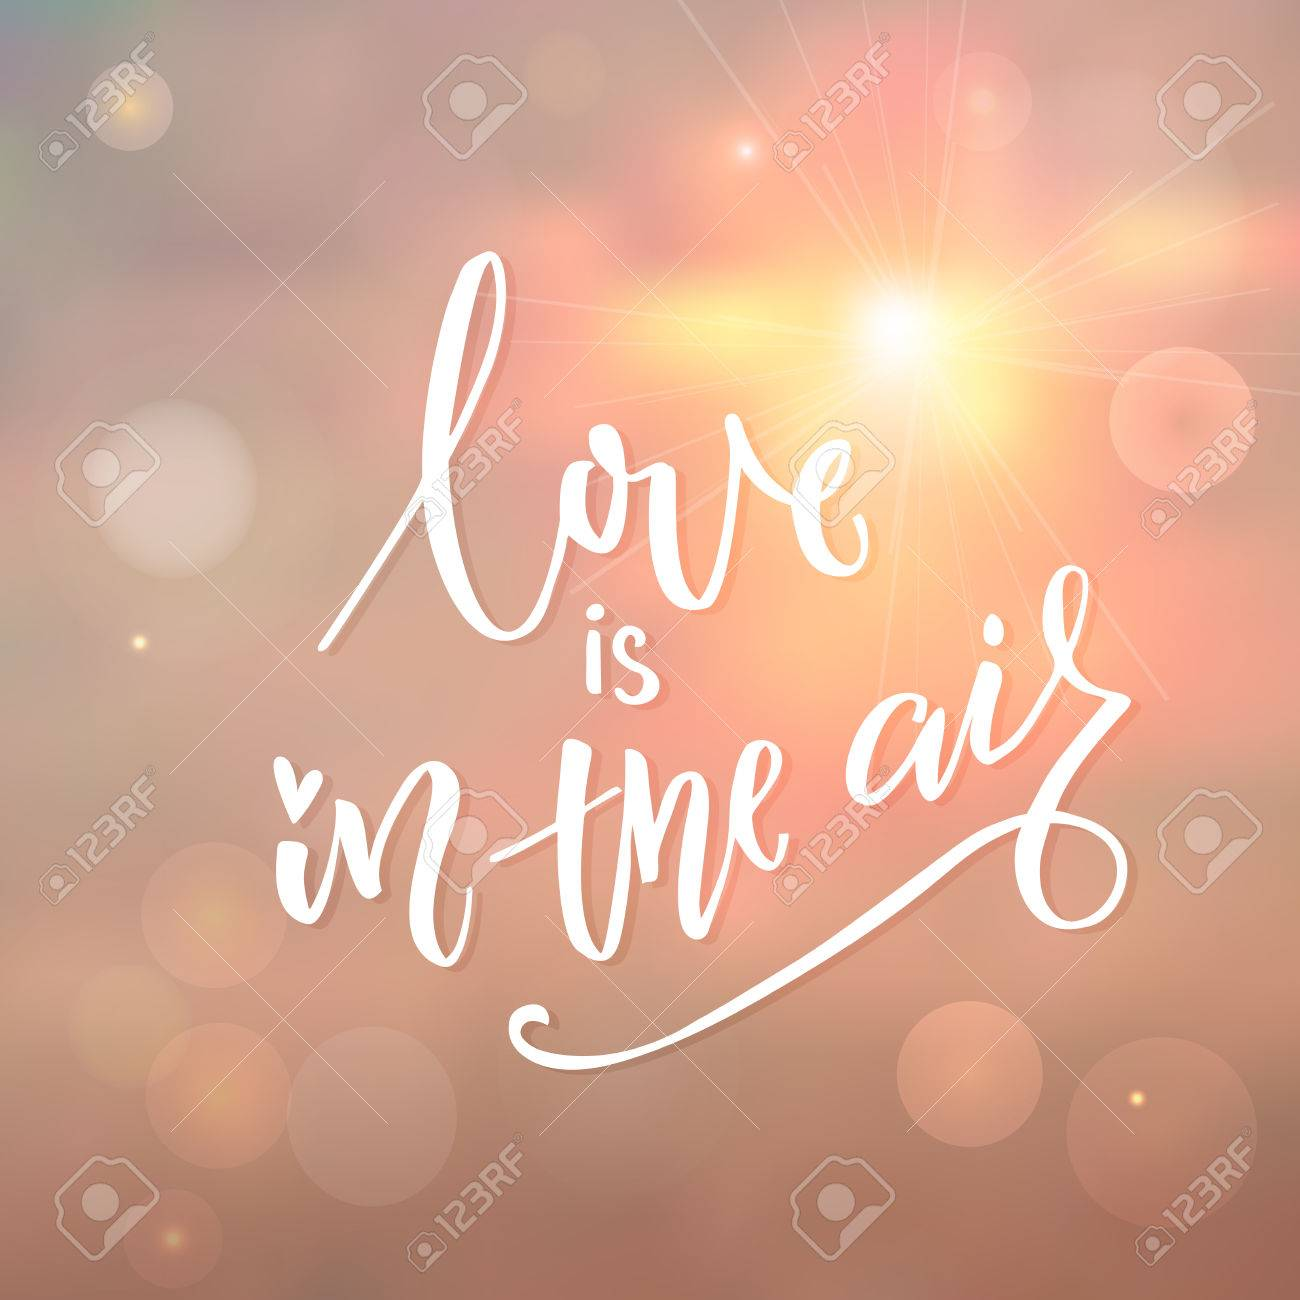 Love Is In The Air Romantic Quote Calligraphy On Morning Sky